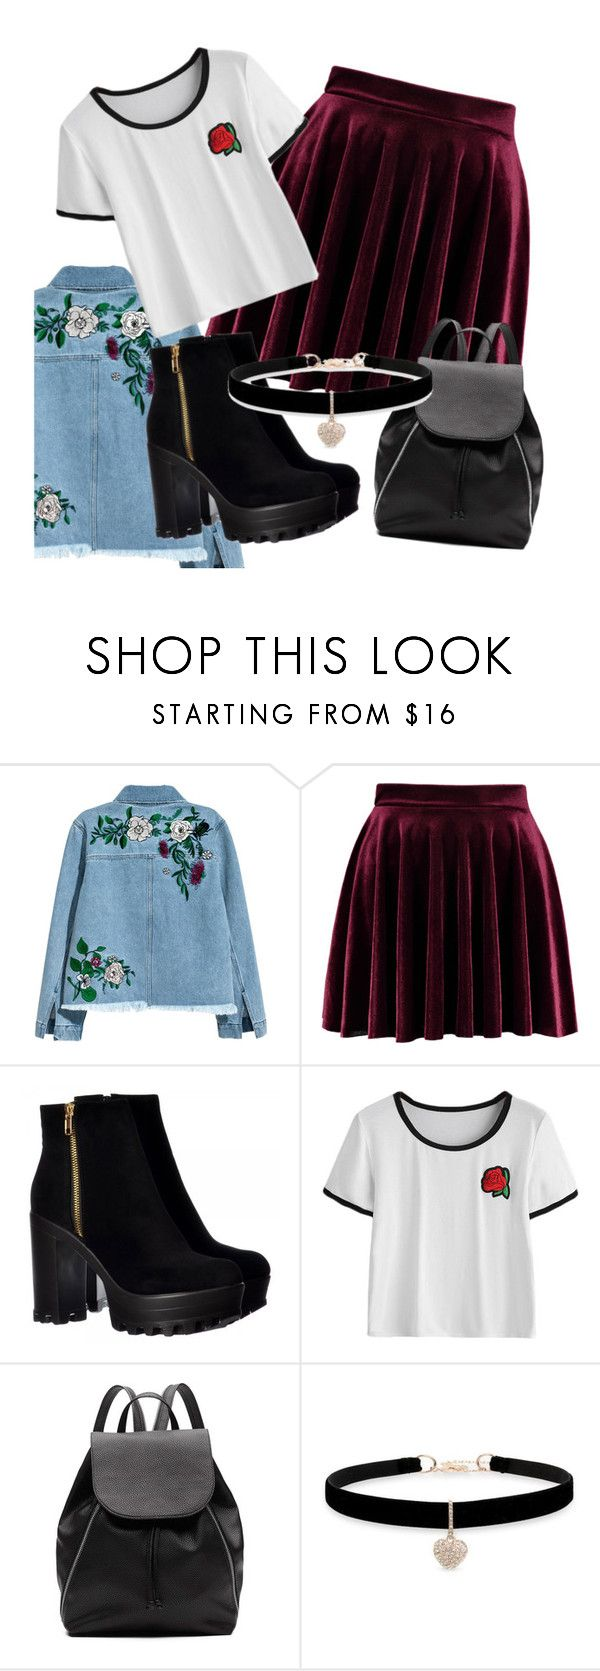 """Rocky"" by thaiscf on Polyvore featuring H&M, Witchery and Betsey Johnson"